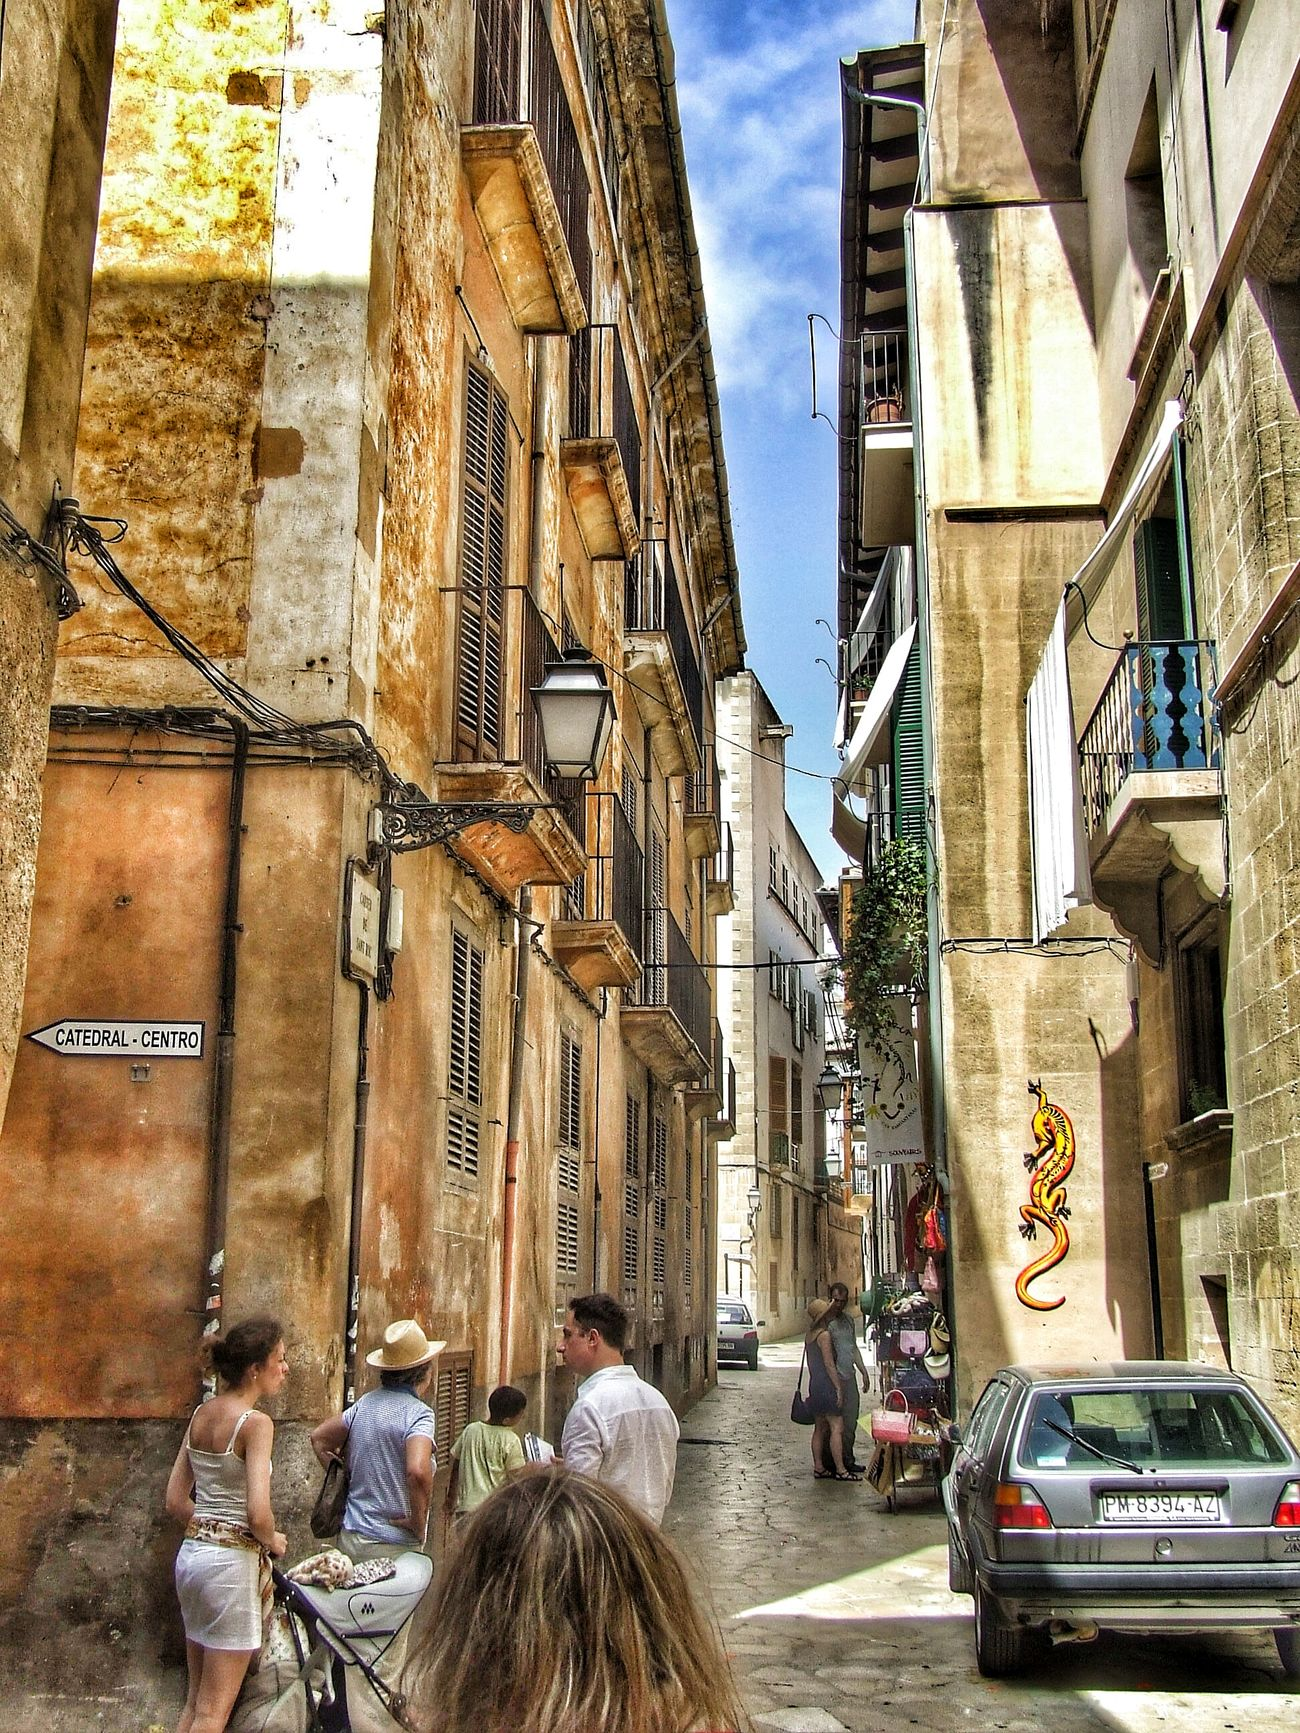 Palma De Mallorca Buildingstyles Old Buildings Old Architecture Street Life Street Photography Streetview The Tourist